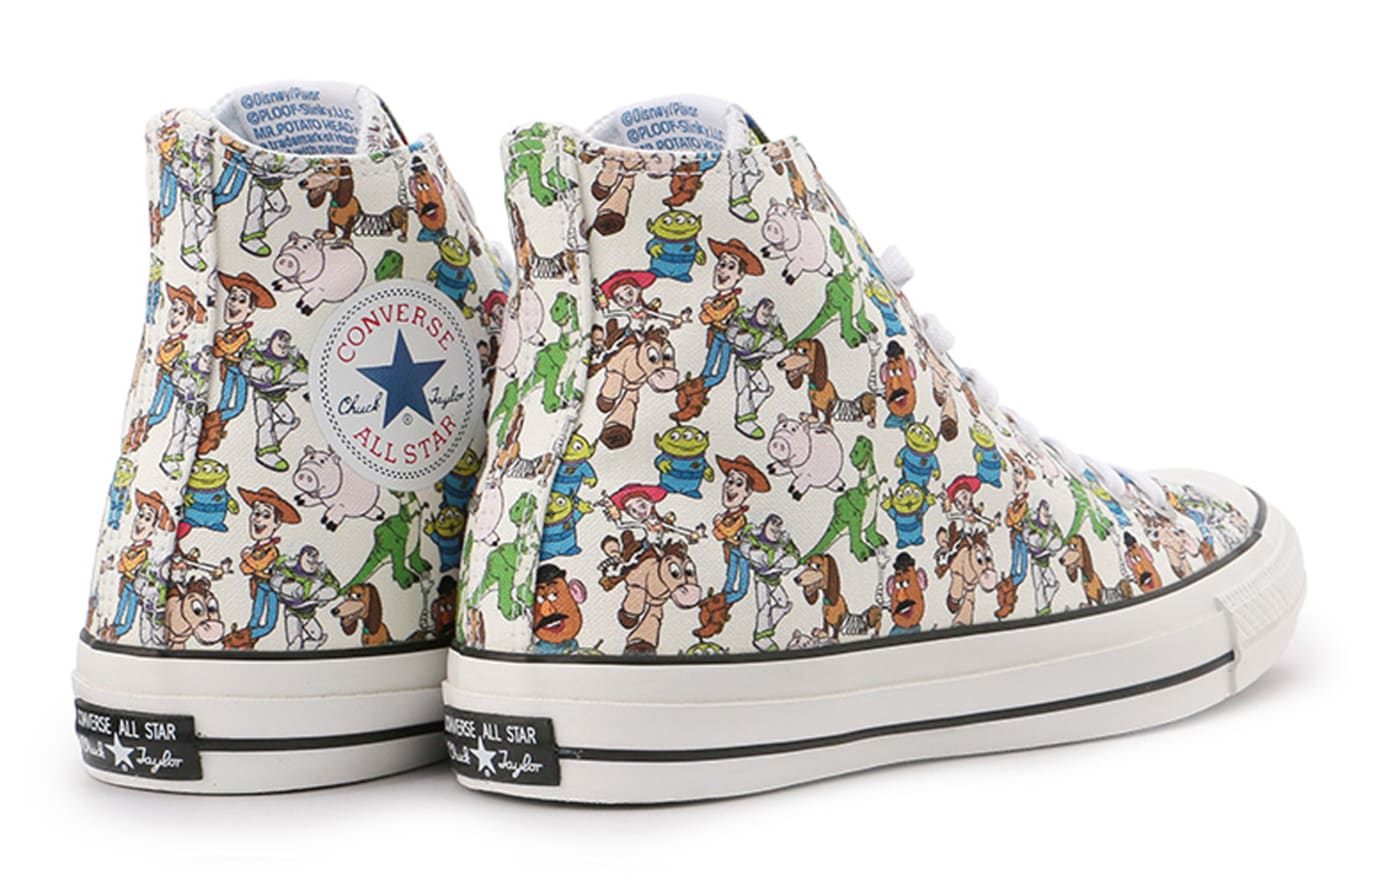 Toy Story x Converse Chuck Taylor All Star 329616600 2